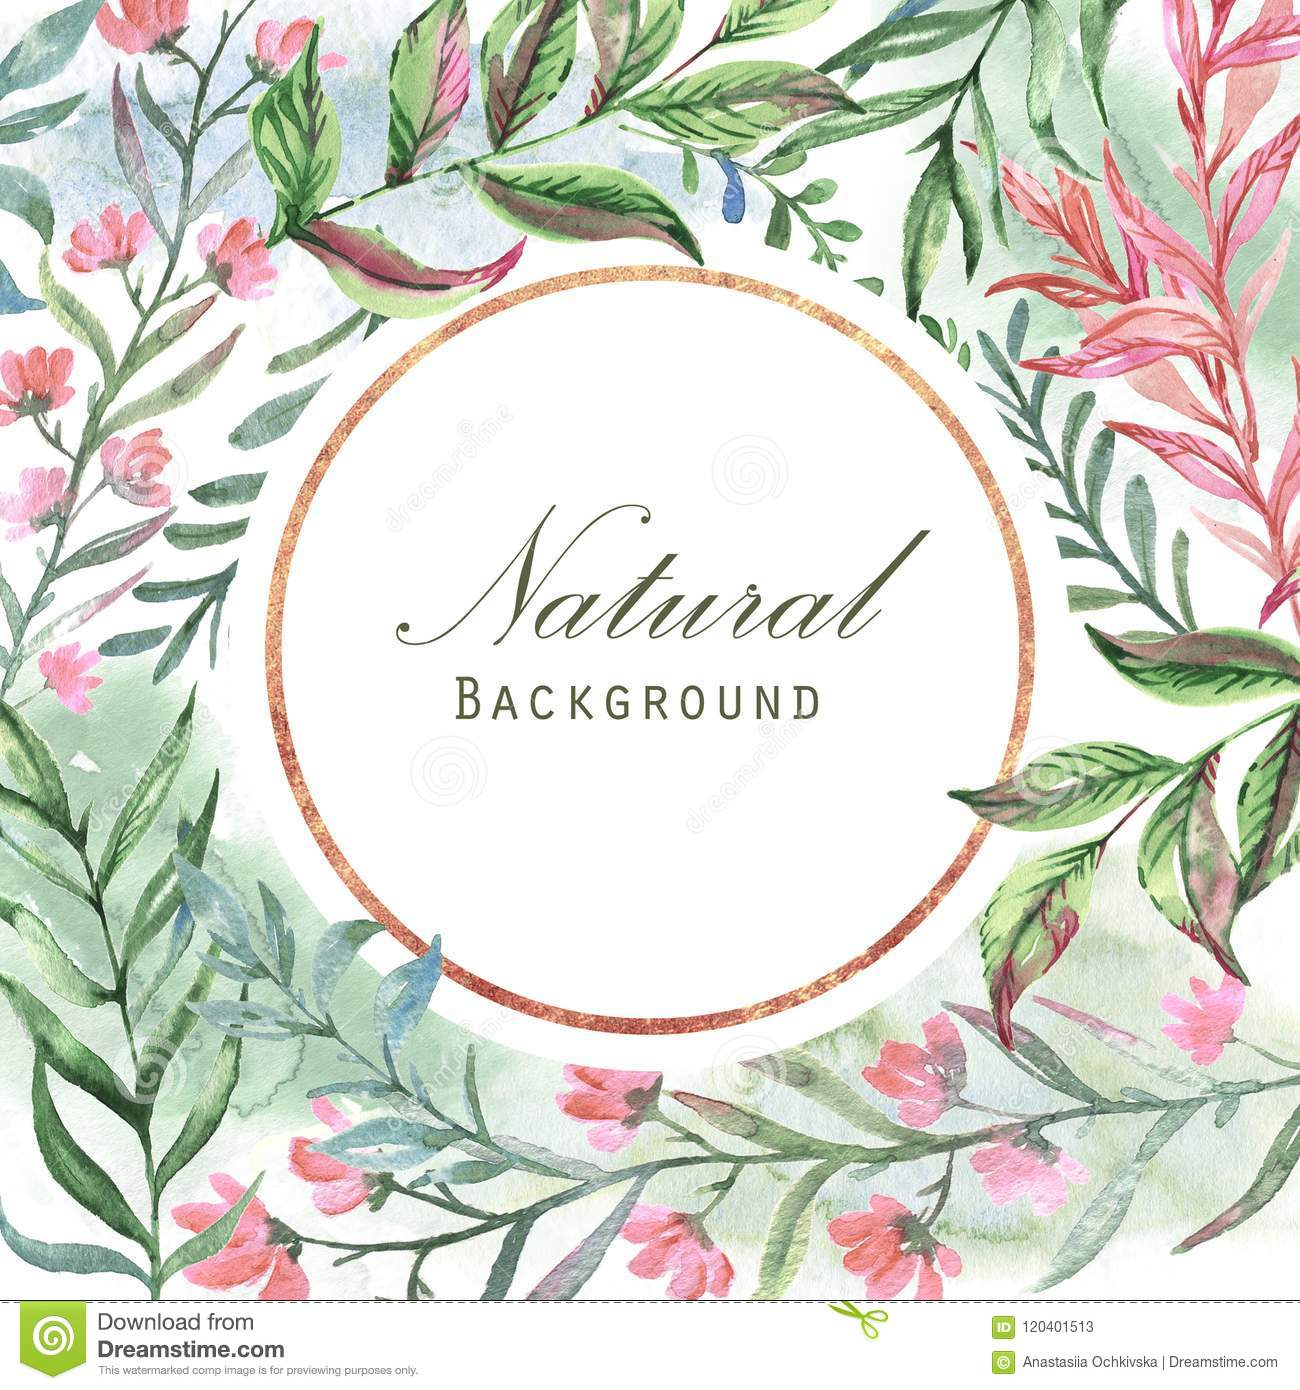 photo regarding Watercolor Floral Border Paper Printable identify Body Style and design With Leaves, Vegetation, Bouquets And Geometric